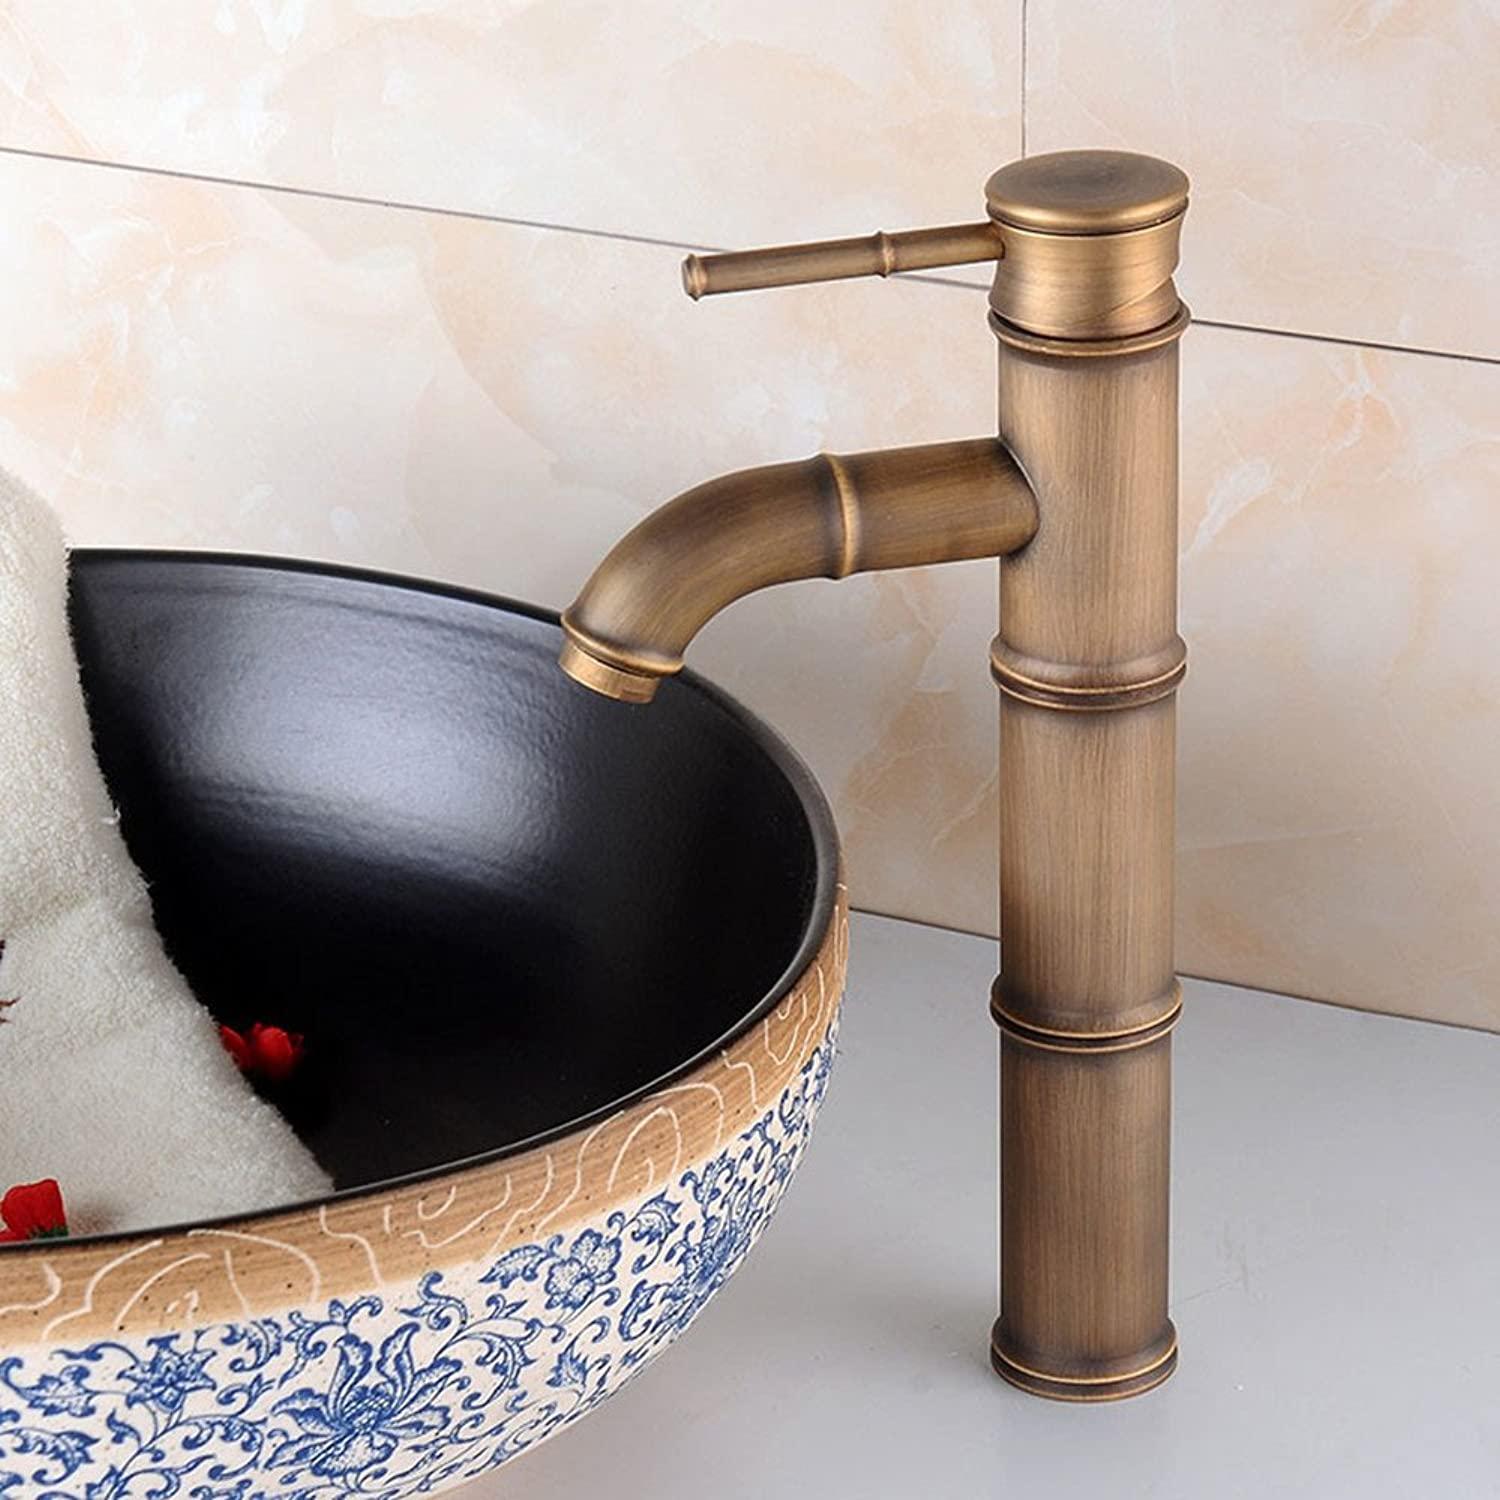 Hlluya Professional Sink Mixer Tap Kitchen Faucet Antique basin bamboo-basin mixer full copper single-style hot and cold Faucet